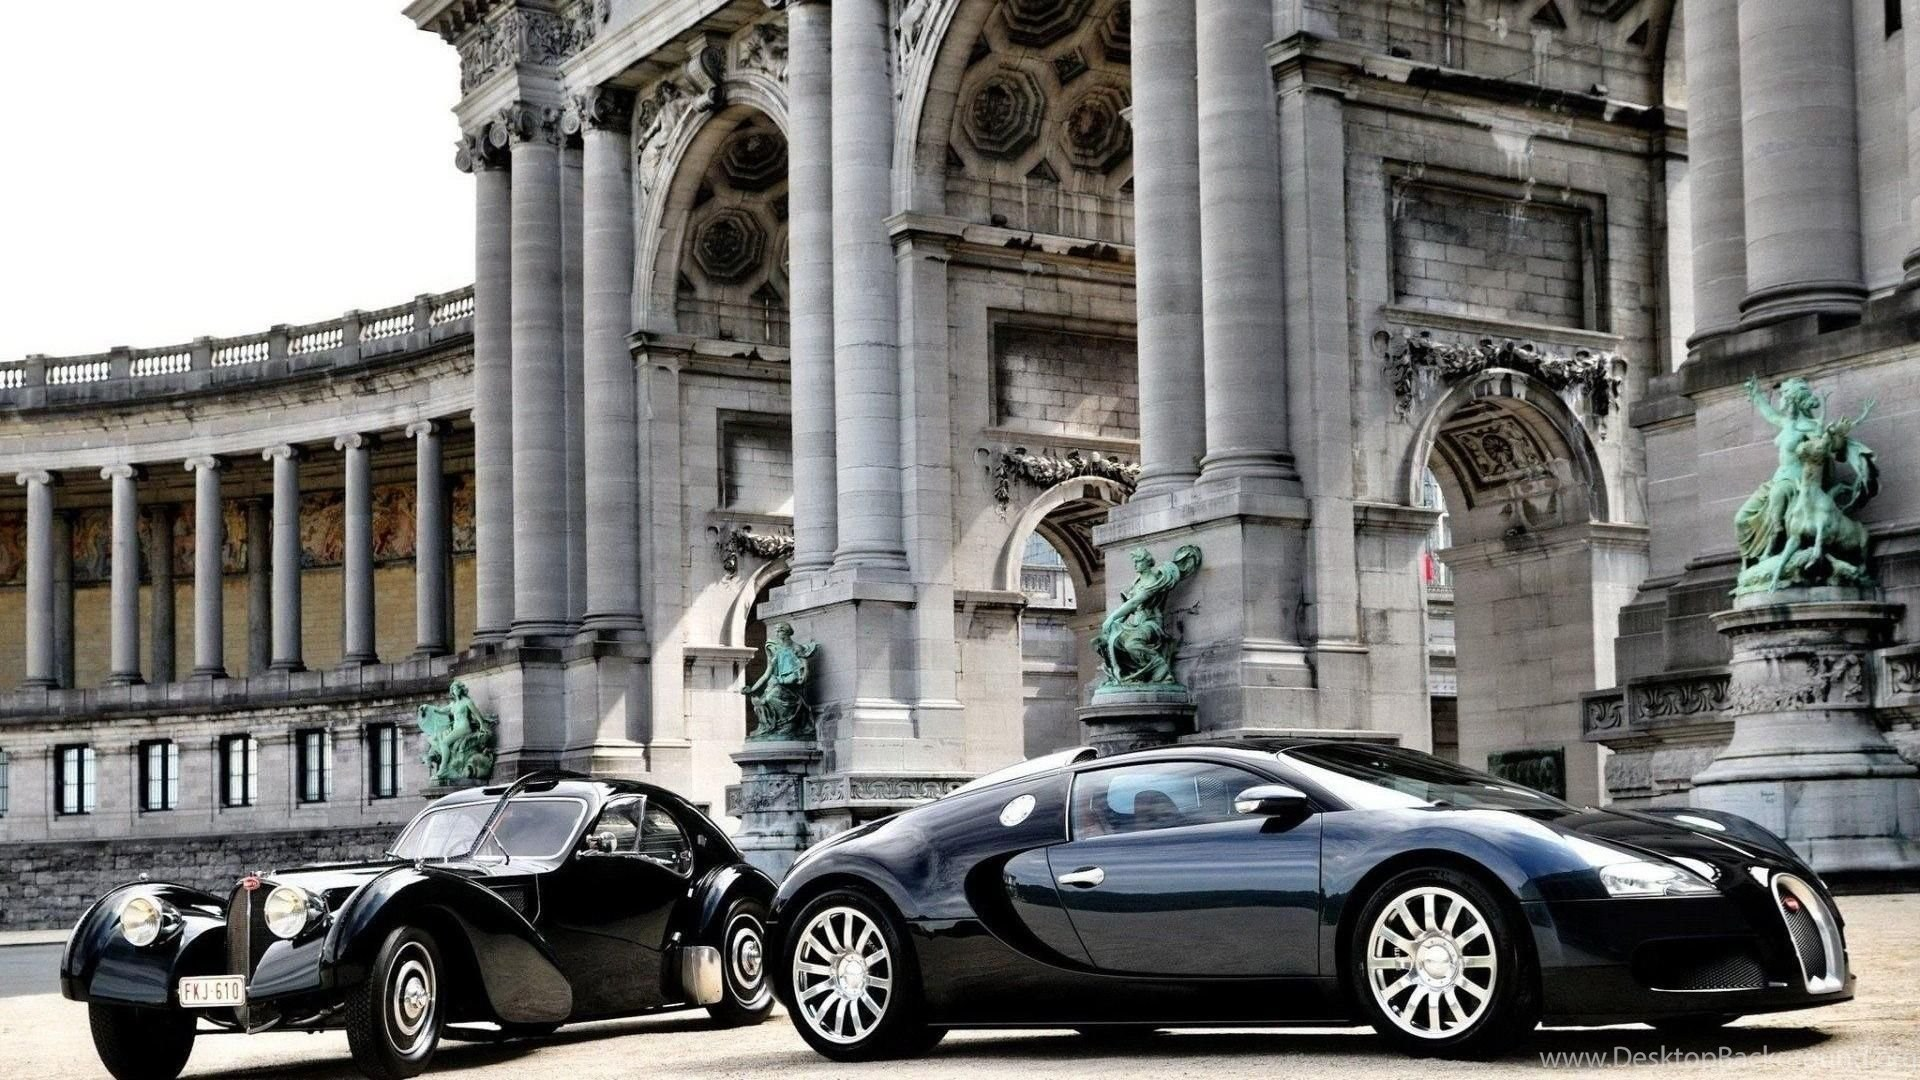 Download Wallpapers 1920x1080 Cars Bugatti Veyron Luxury Black Desktop Background